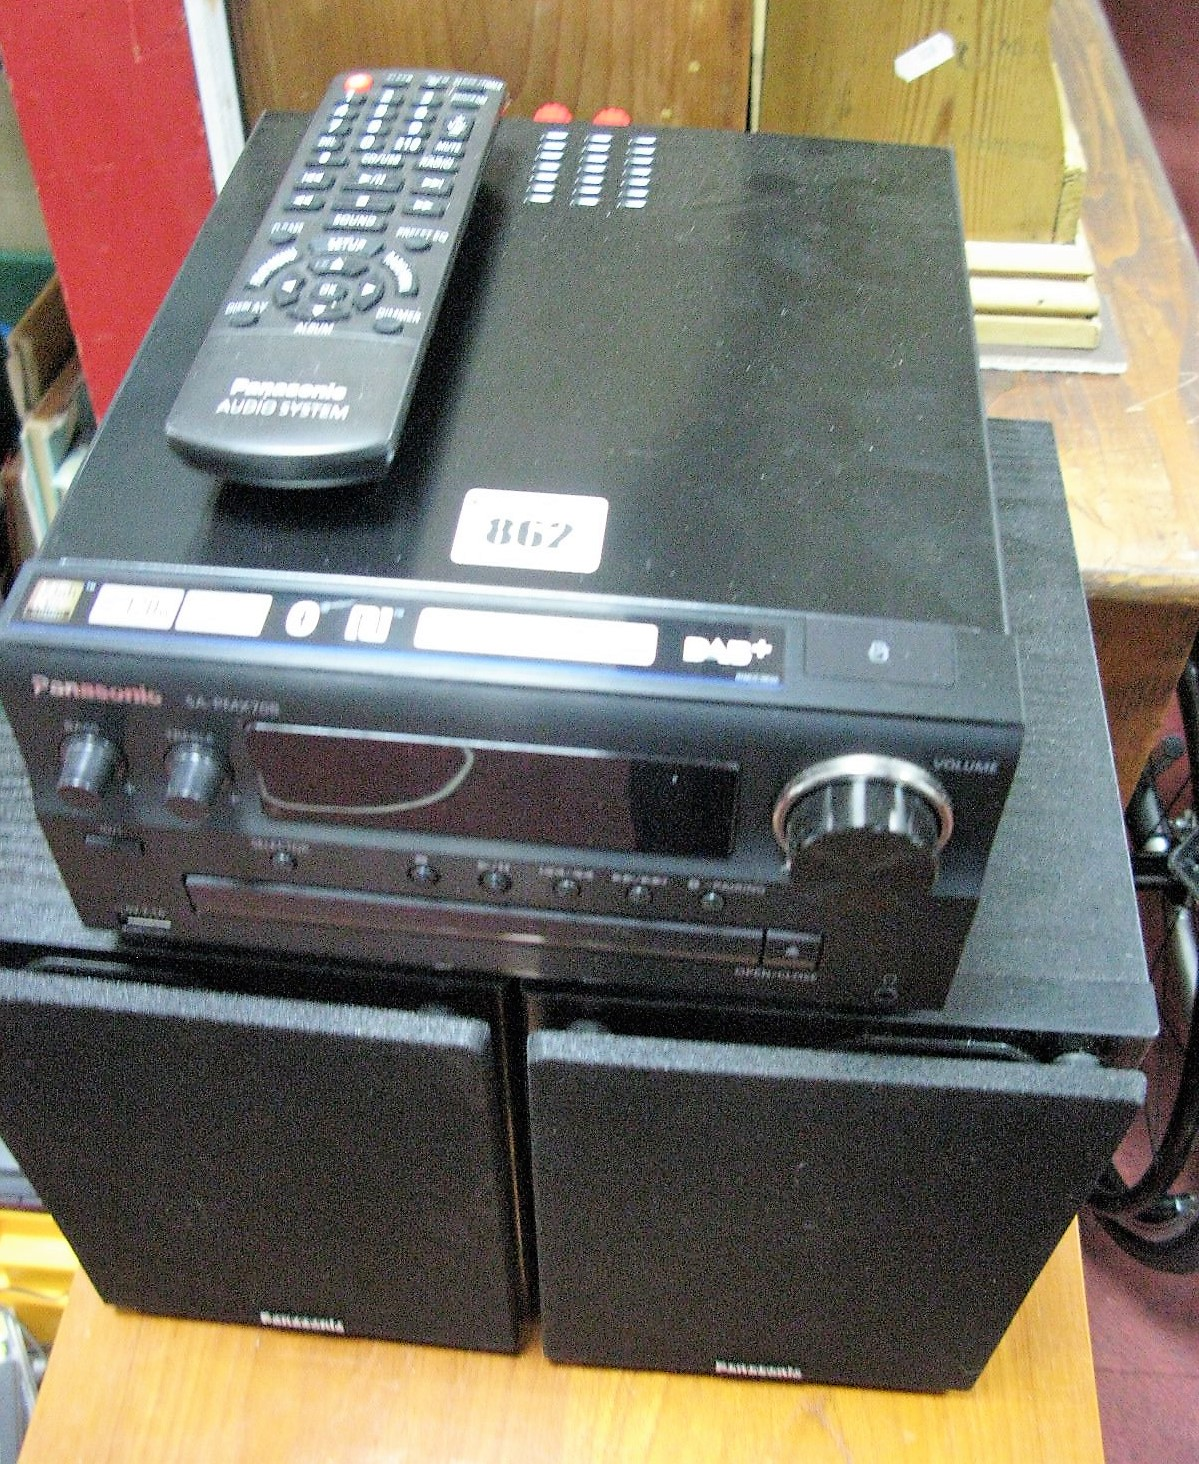 Lot 862 - A Quantity of CD's, floor unit and Panasonic player, (untested, sold for parts only).